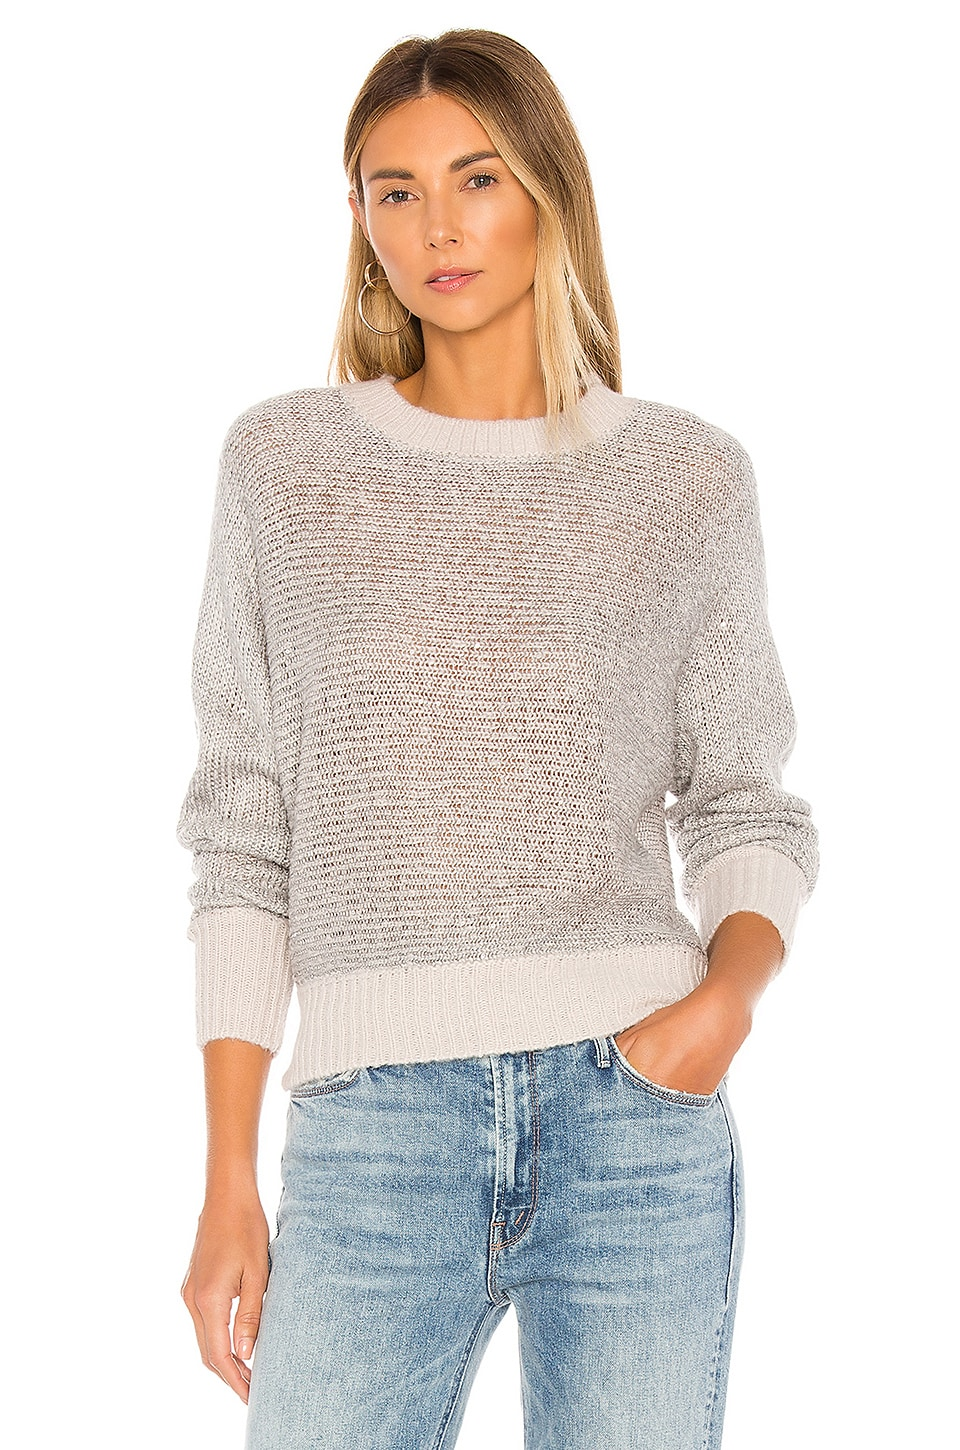 Lovers + Friends Desert Nights Sweater in Silver